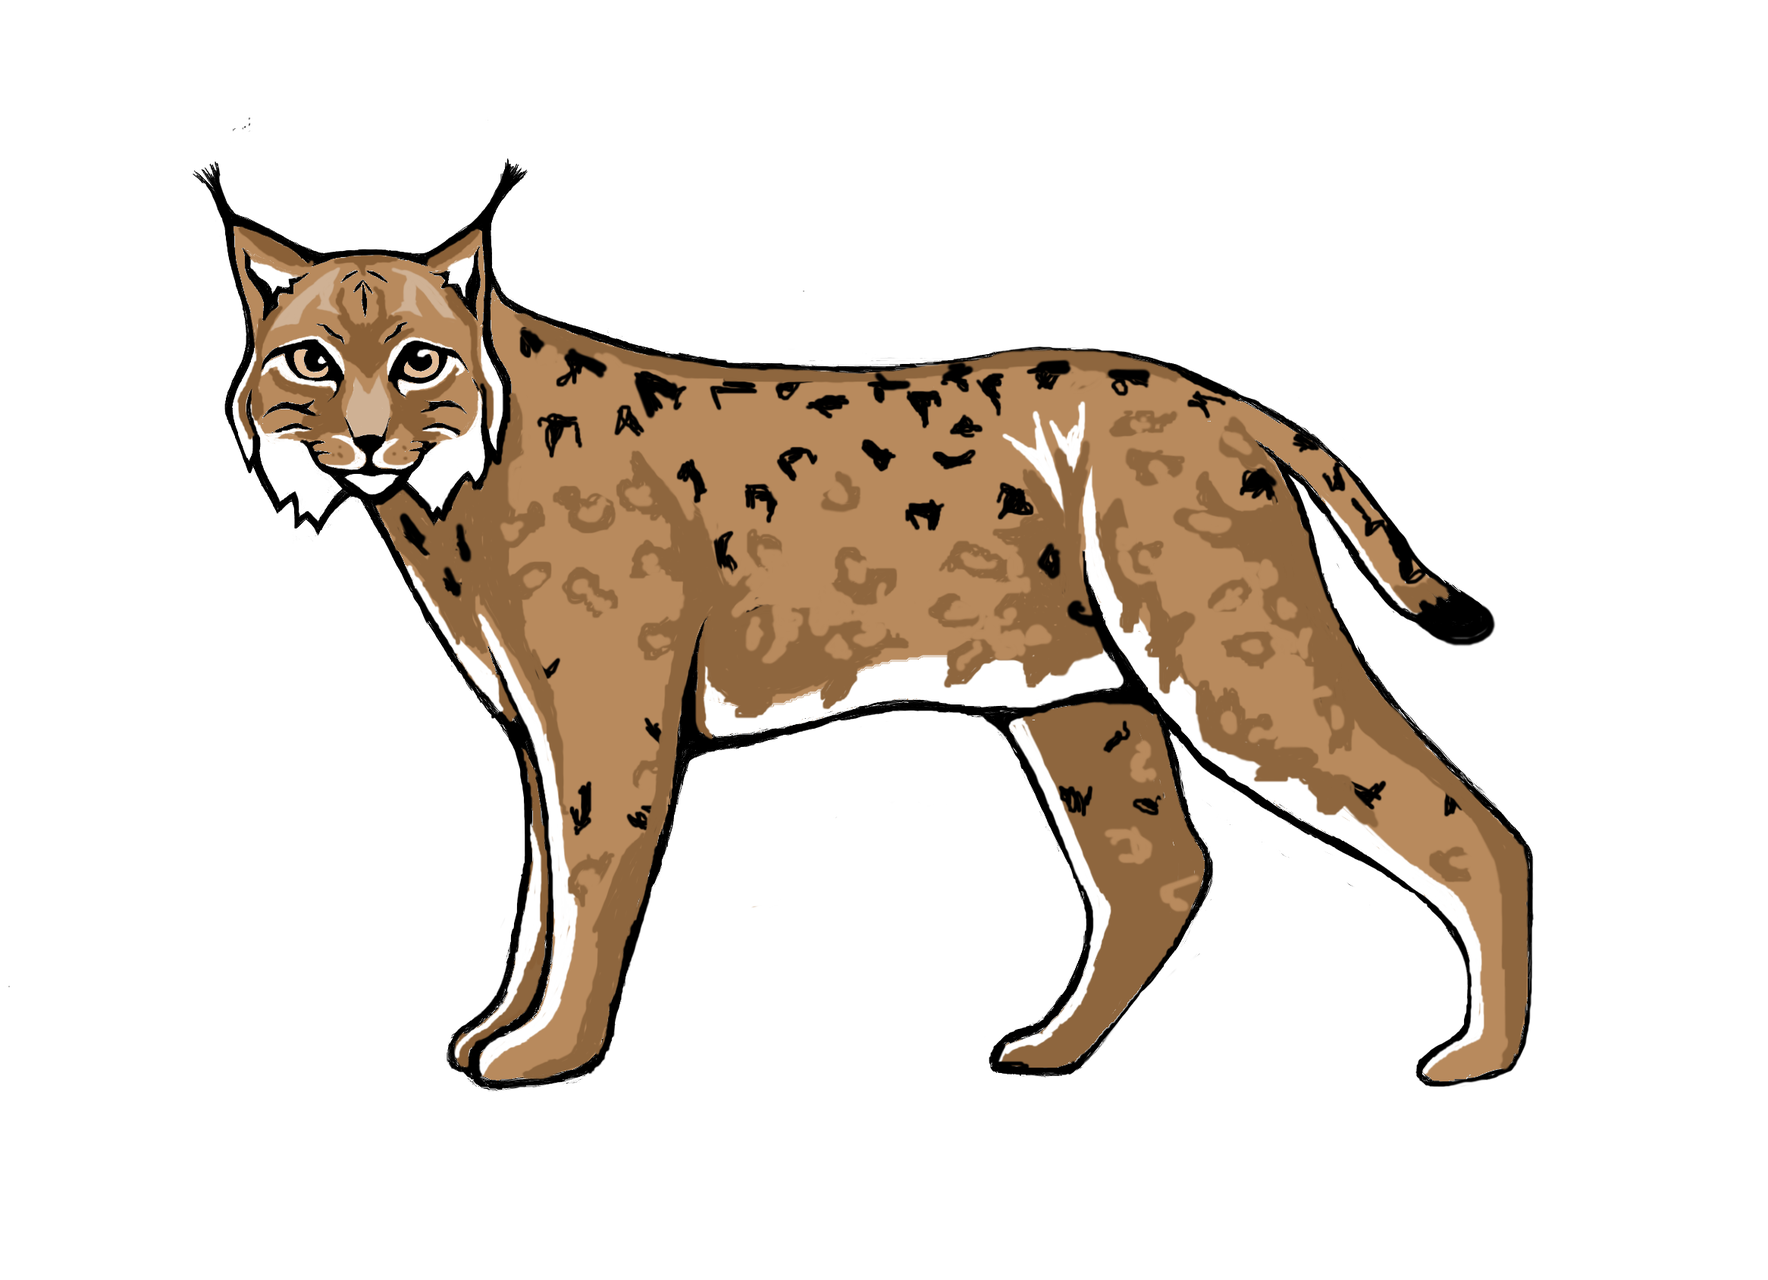 Game topic - lynx and wildcat reintroduction